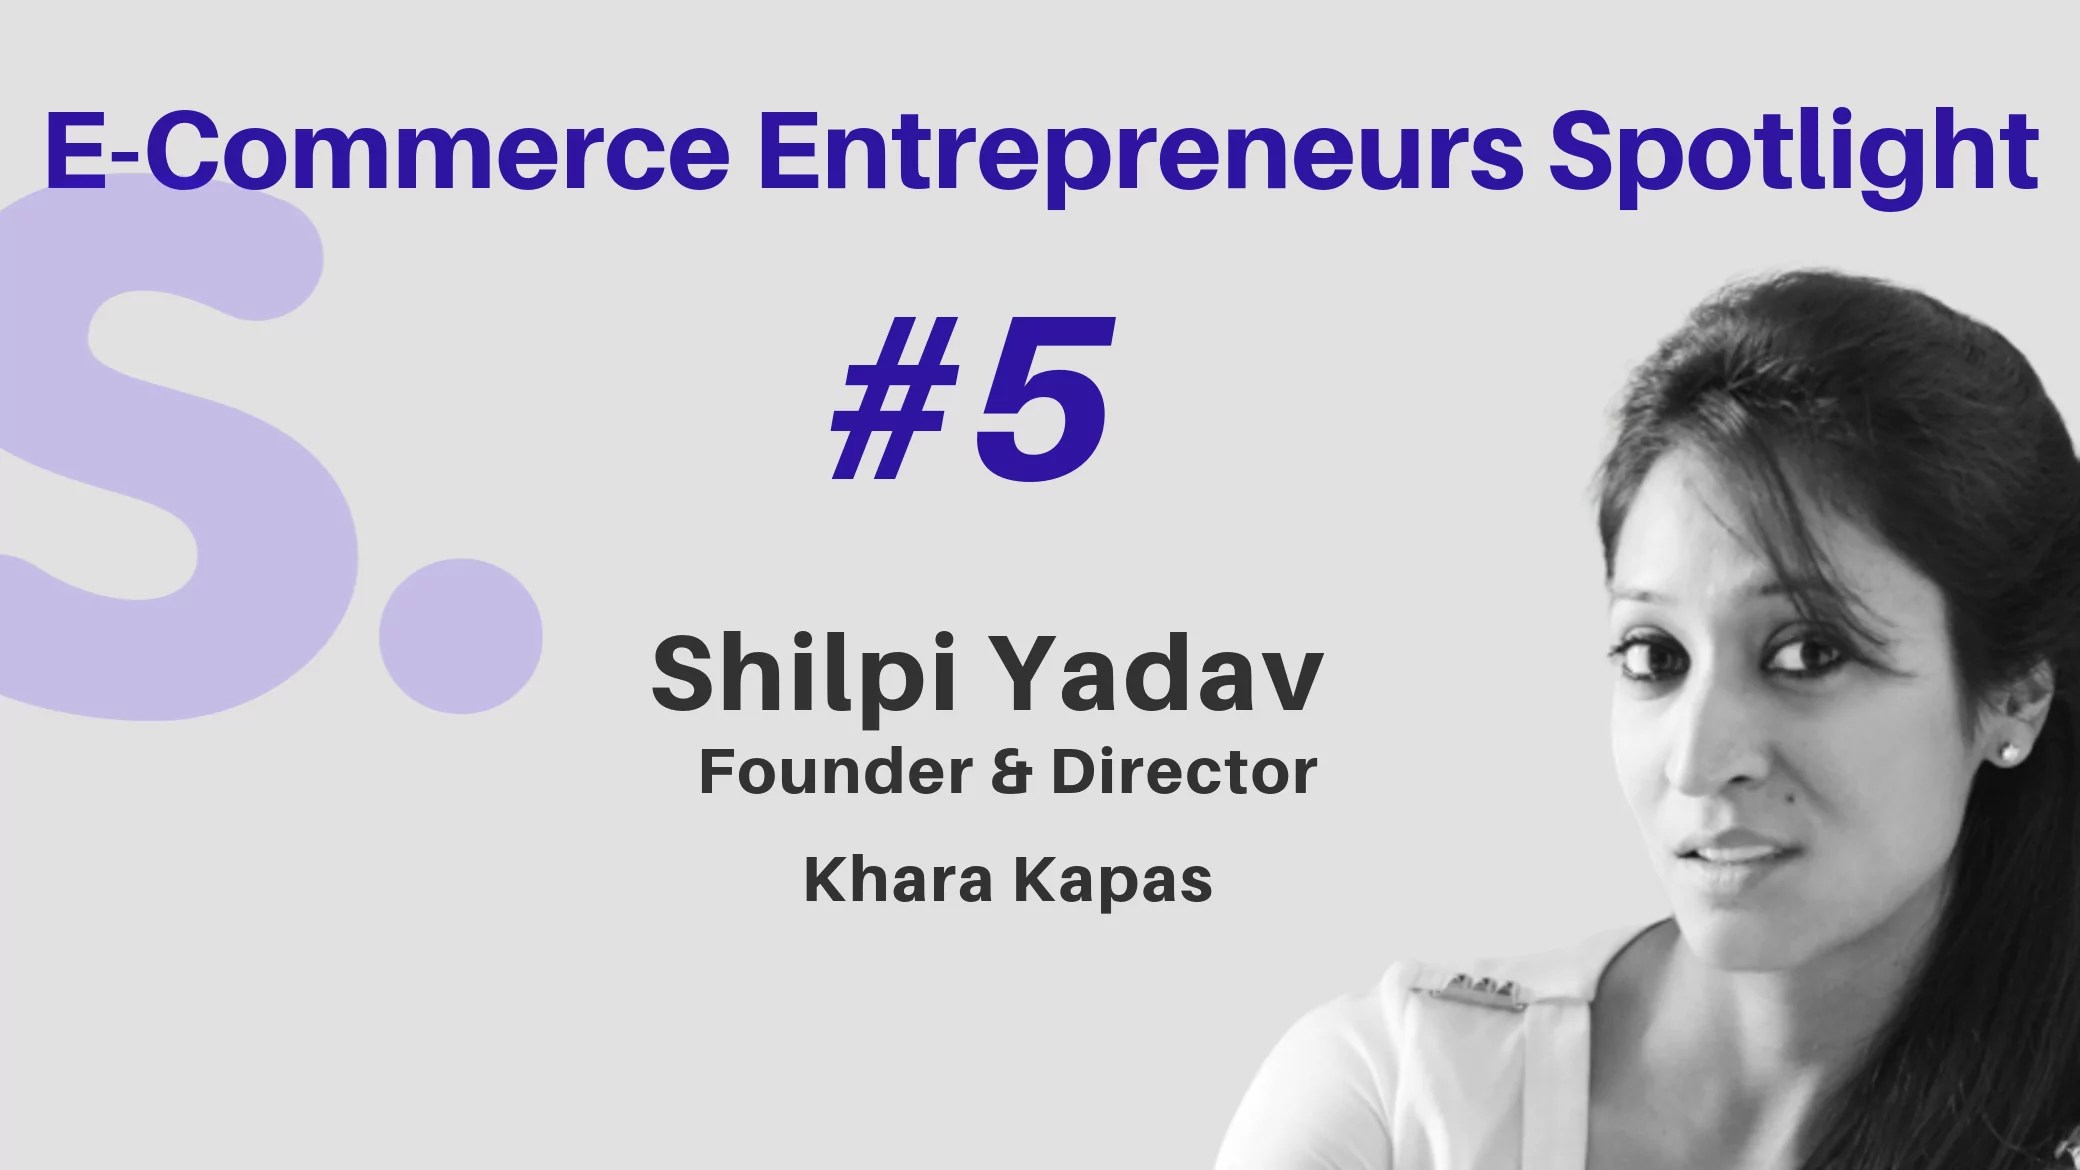 Shoppr's Interview with Shilpi Yadav, Founder & Director, Khara Kapas